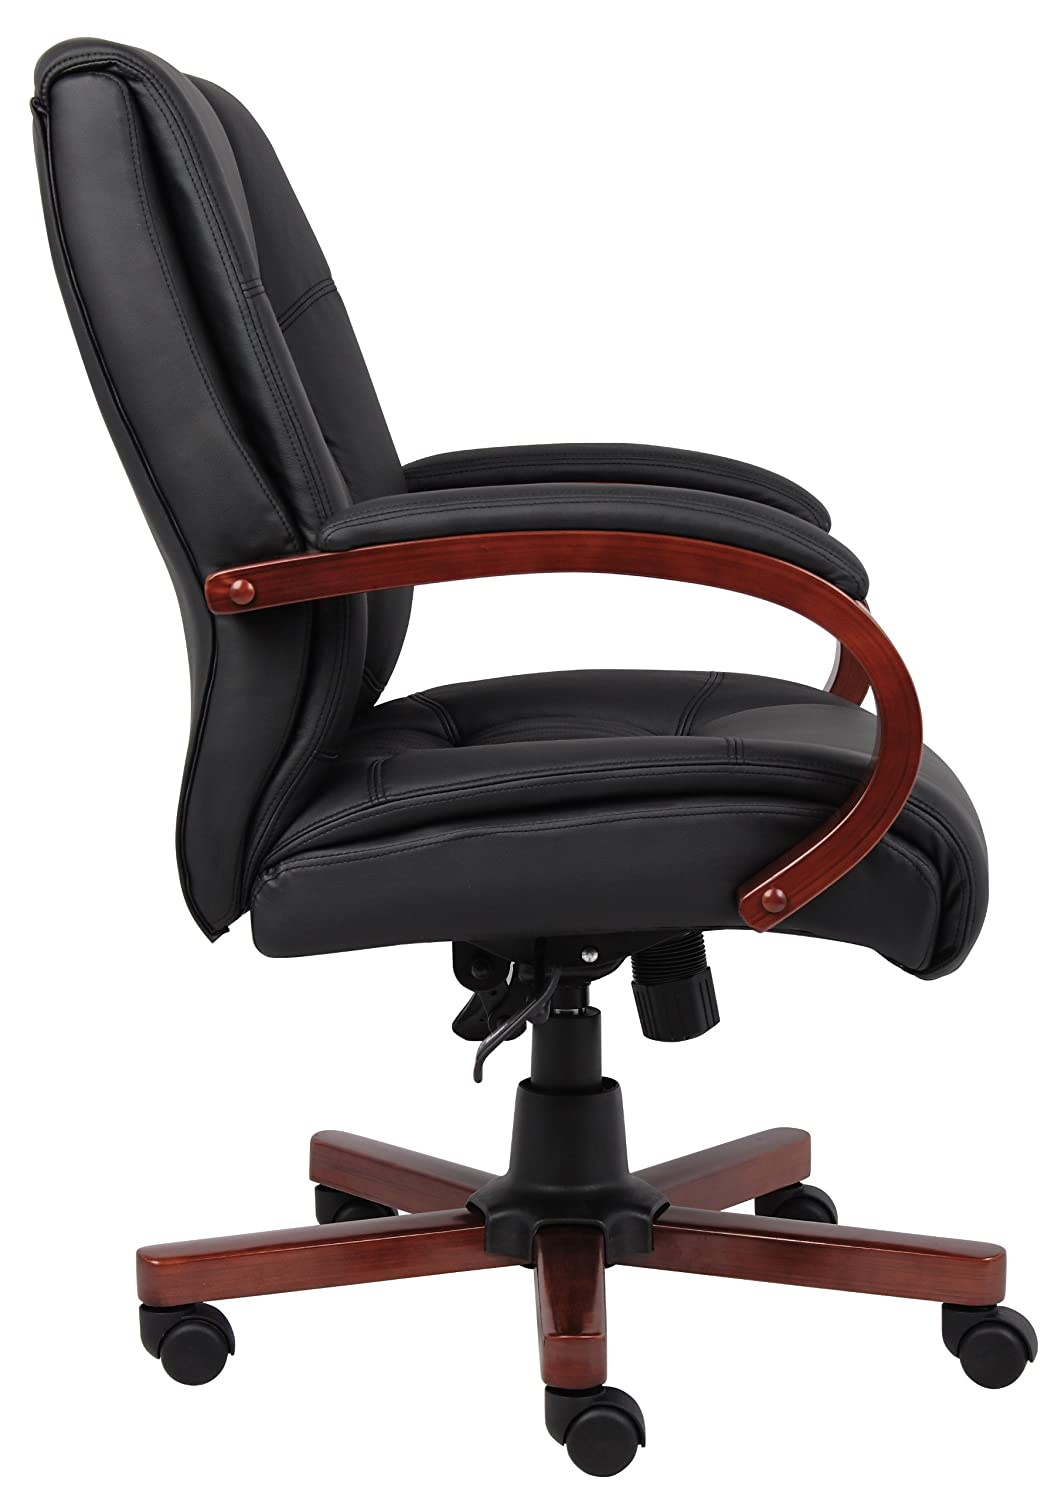 Captivating Amazon.com: Boss Office Products B8996 C Mid Back Executive Wood Chair With  Cherry Finish In Black: Kitchen U0026 Dining